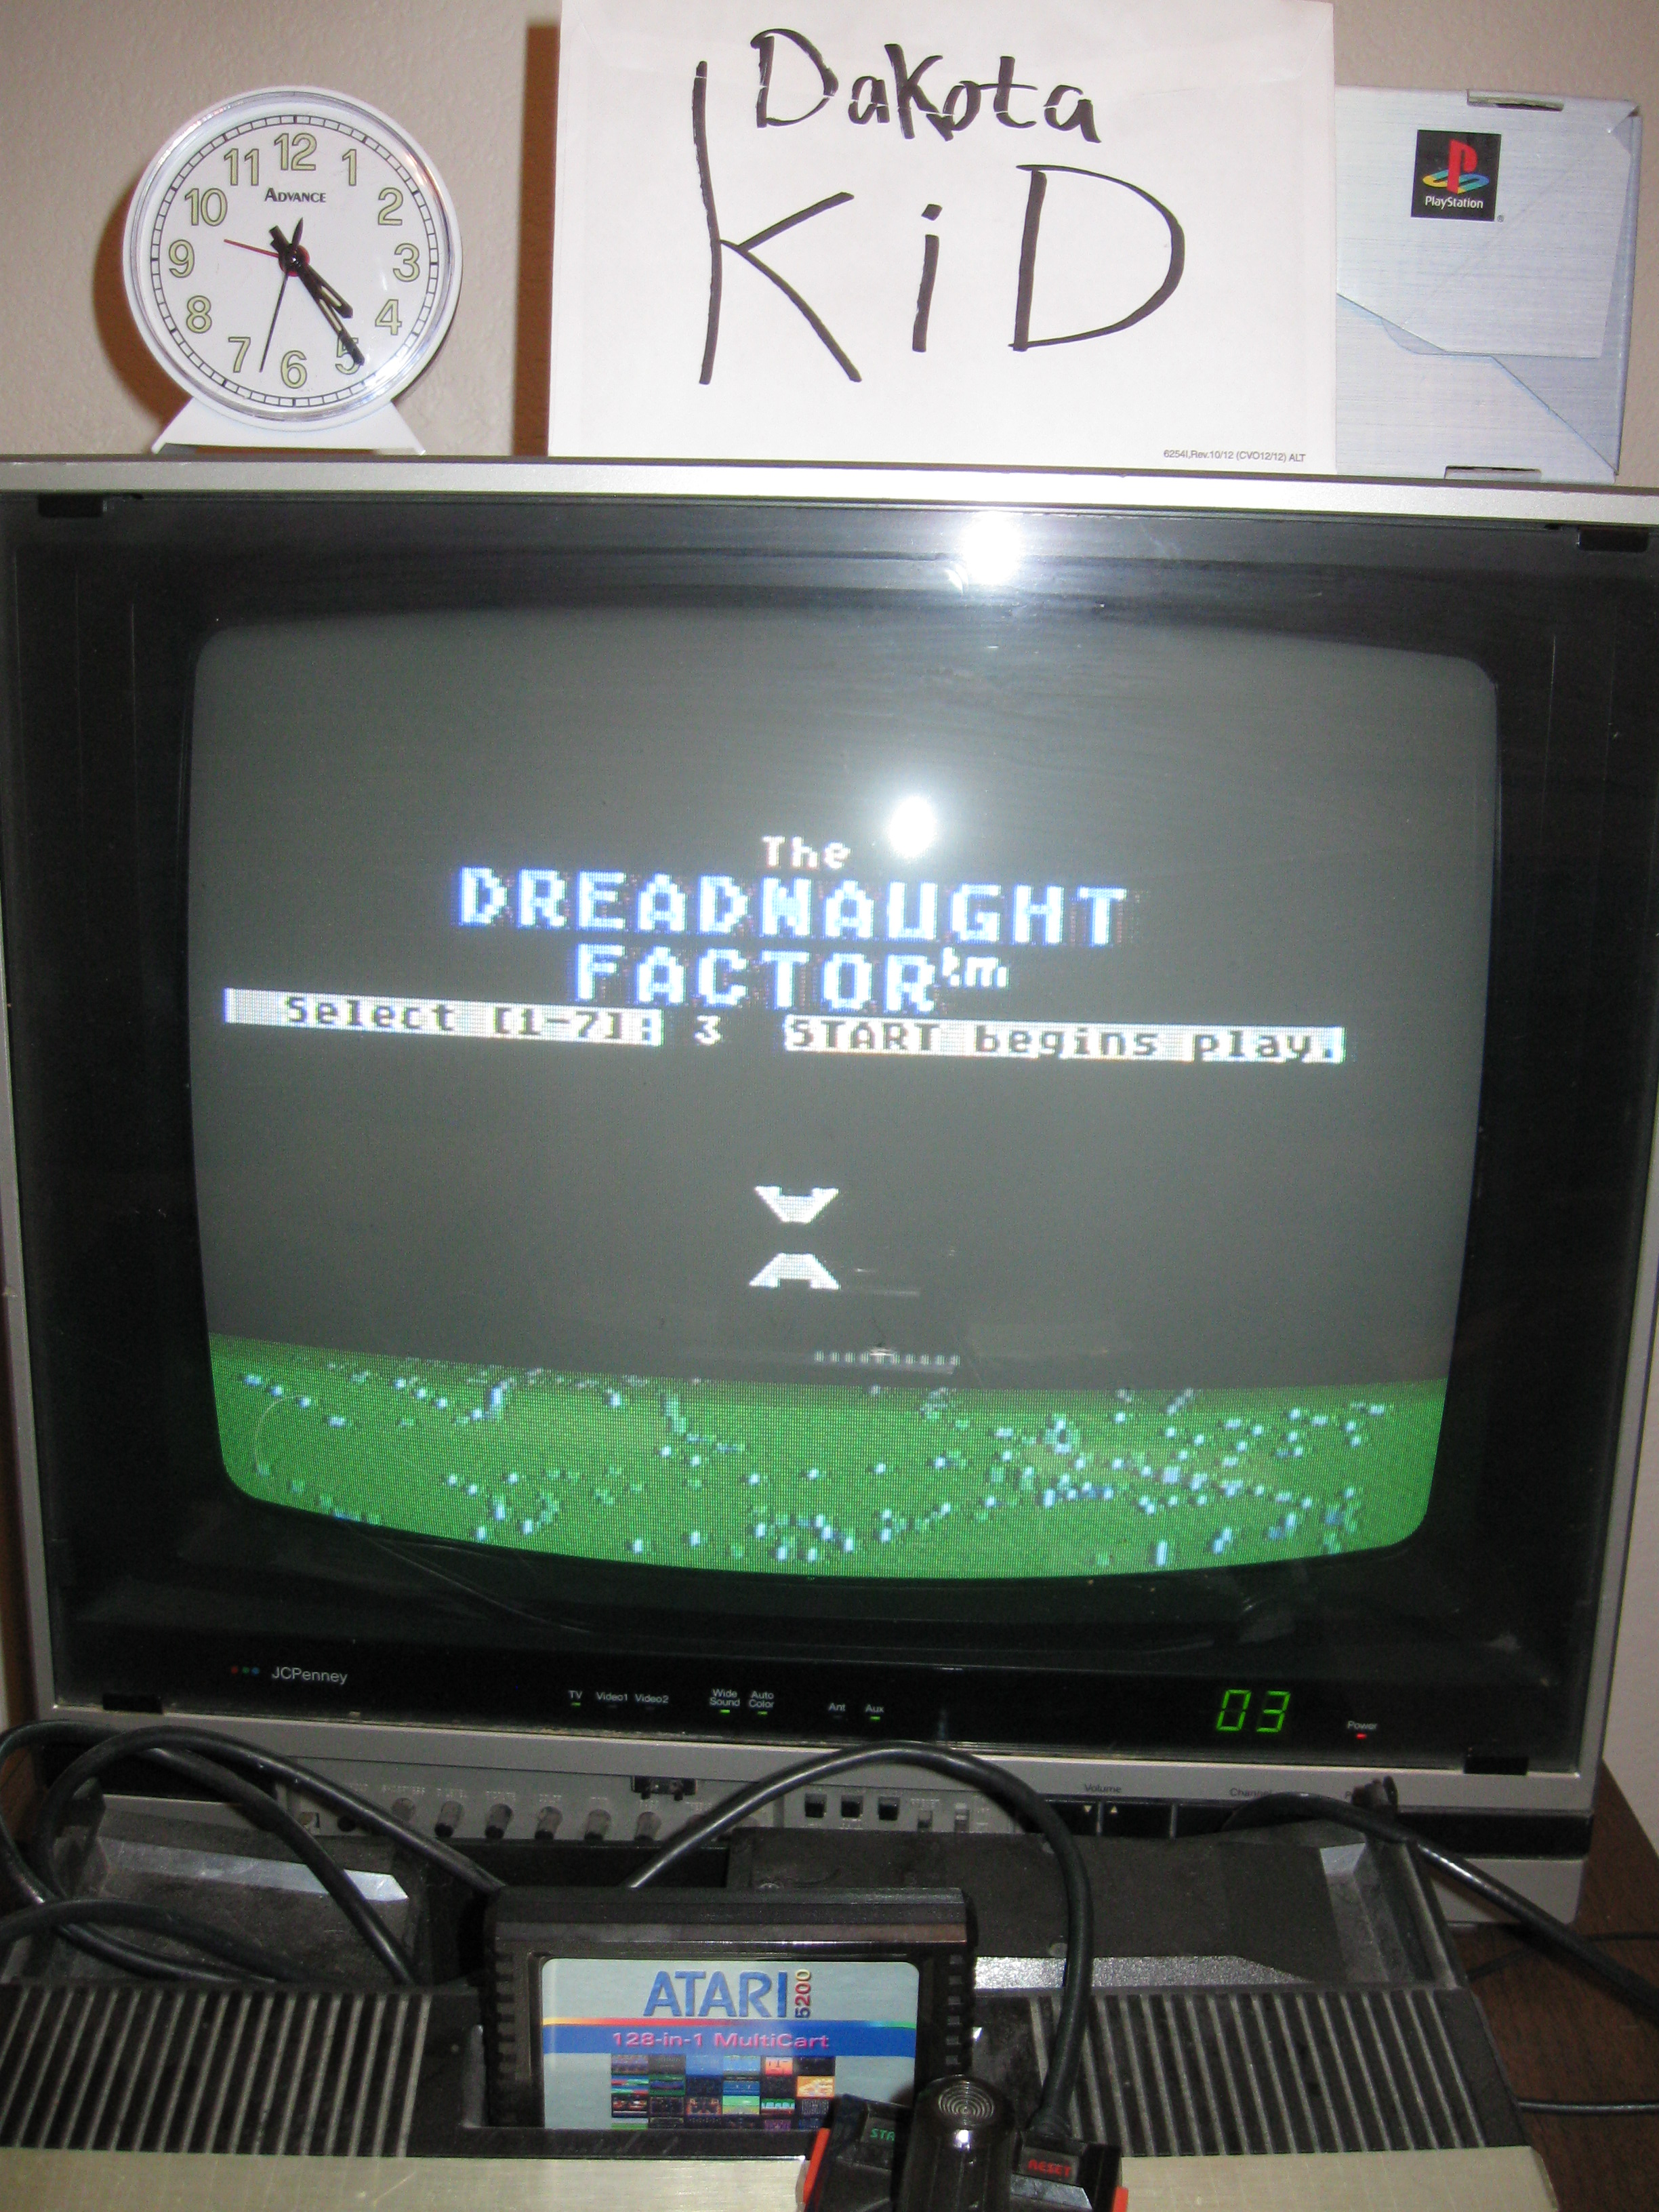 DakotaKid: The Dreadnaught Factor (Atari 5200) 4,593 points on 2016-04-14 19:12:20